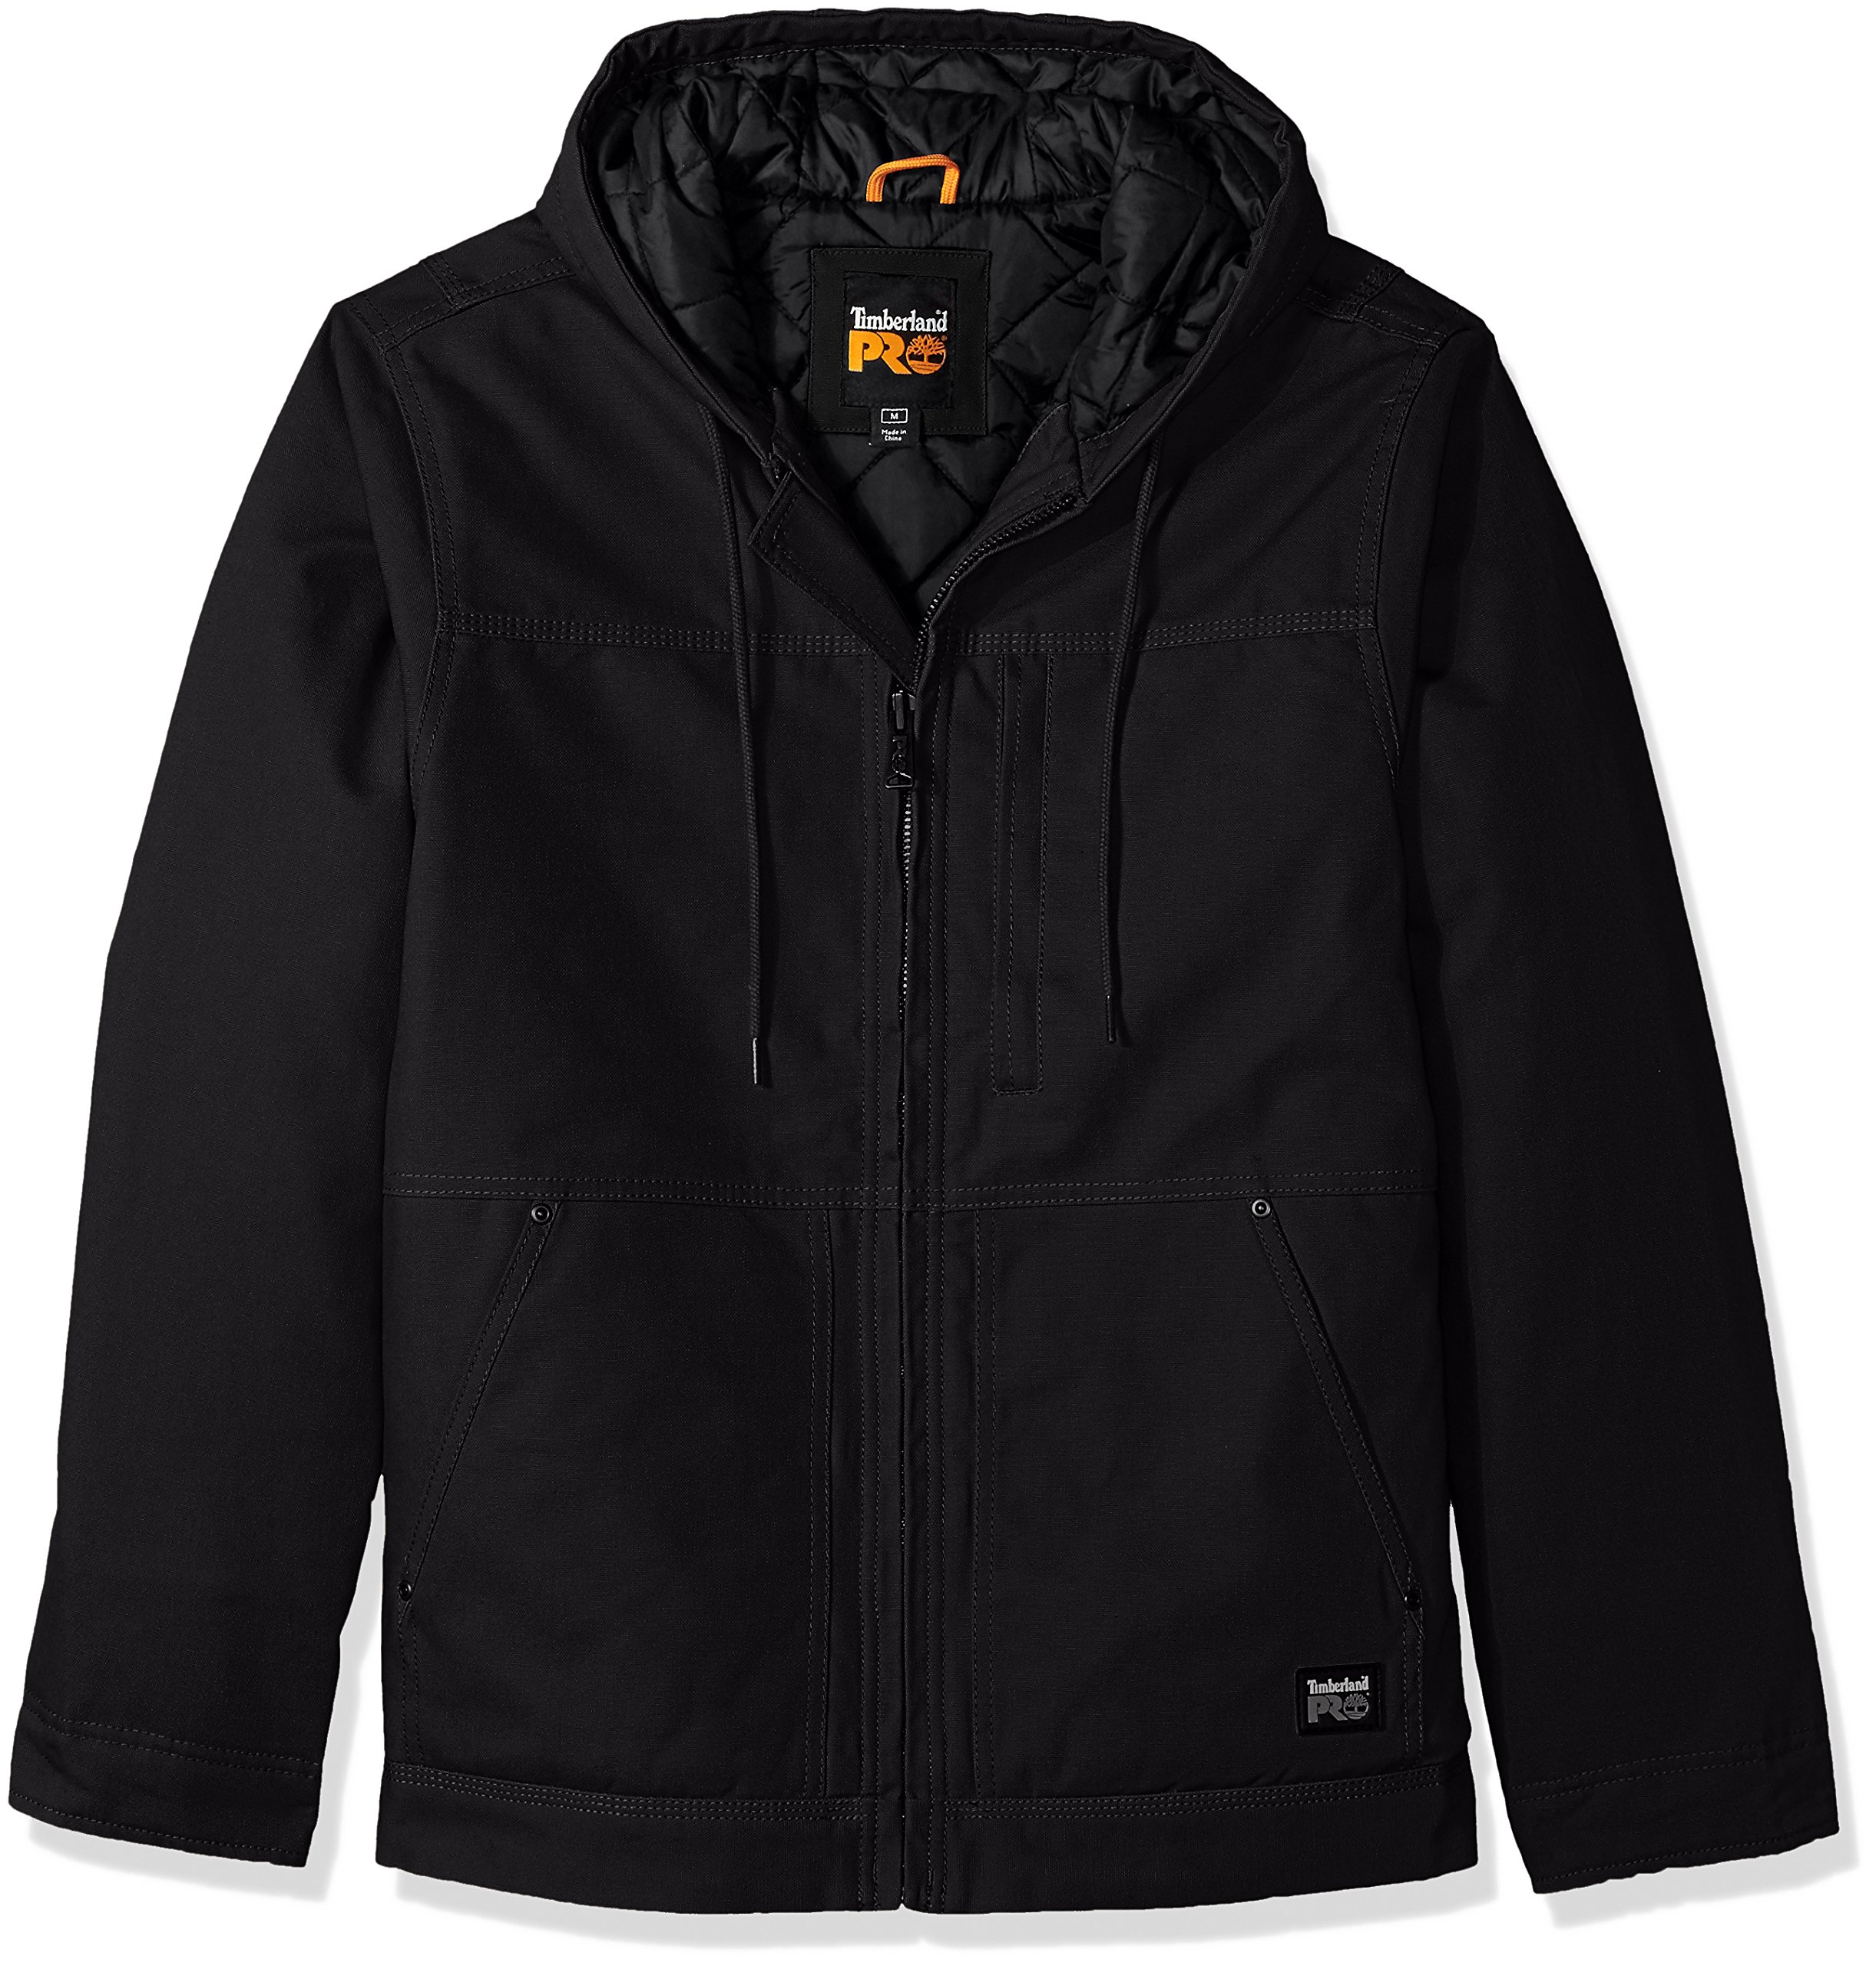 Timberland PRO Men's Big baluster Insulated Hooded Work Jacket, Jet Black, 3X-Large/Tall by Timberland PRO